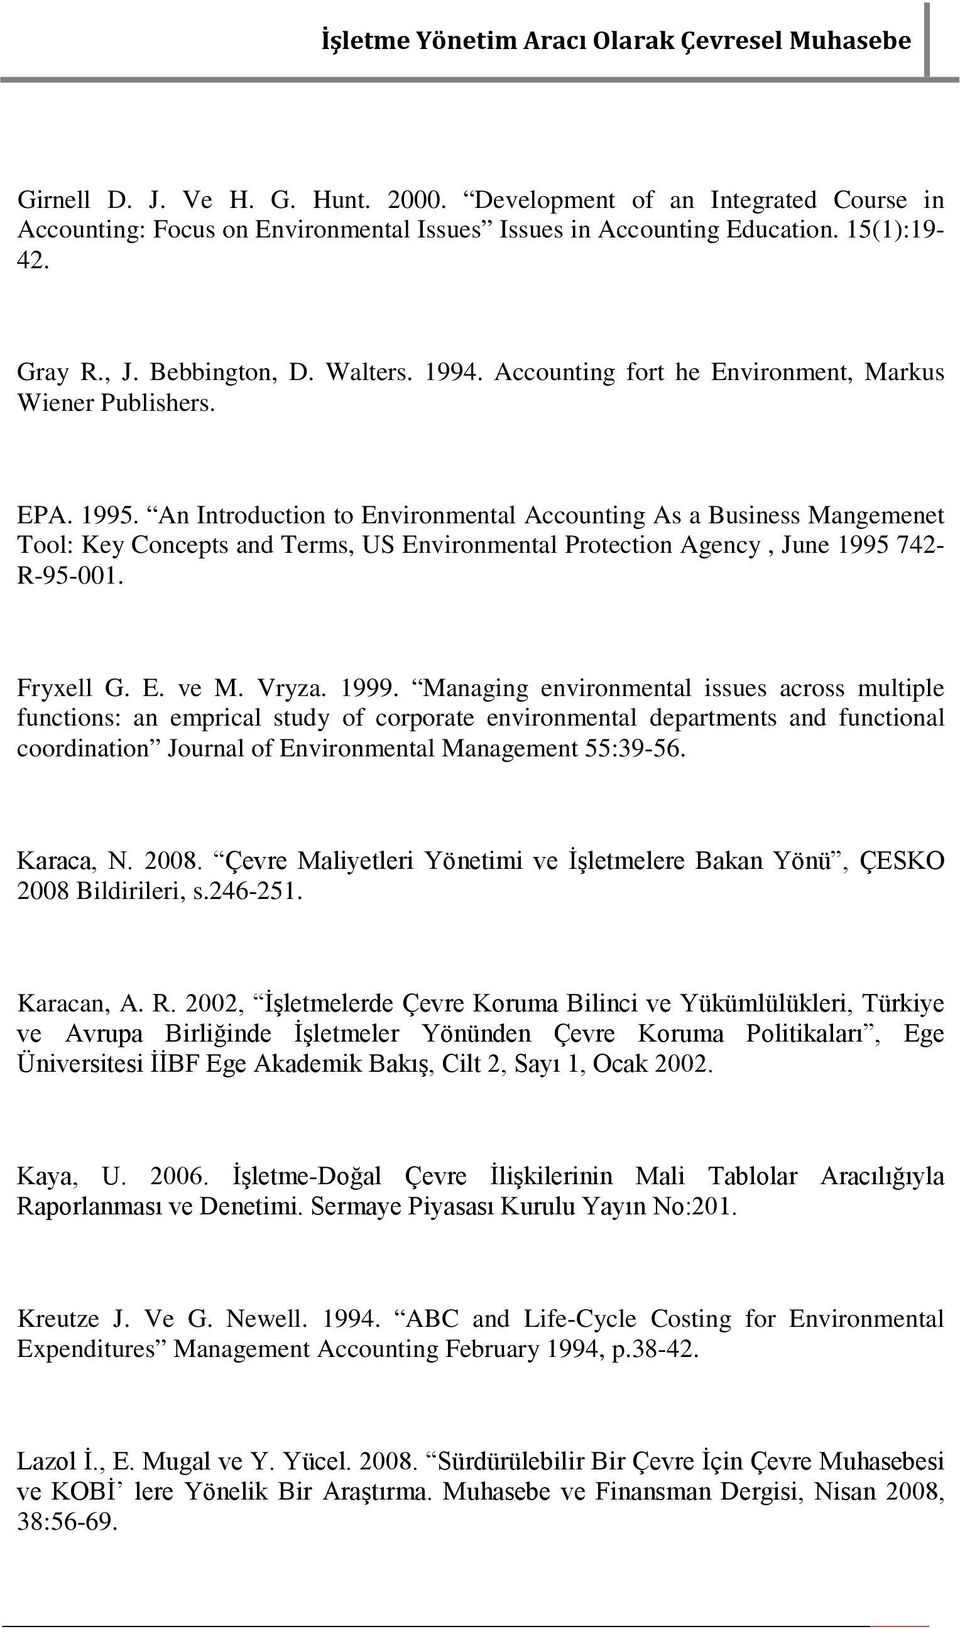 An Introduction to Environmental Accounting As a Business Mangemenet Tool: Key Concepts and Terms, US Environmental Protection Agency, June 1995 742- R-95-001. Fryxell G. E. ve M. Vryza. 1999.